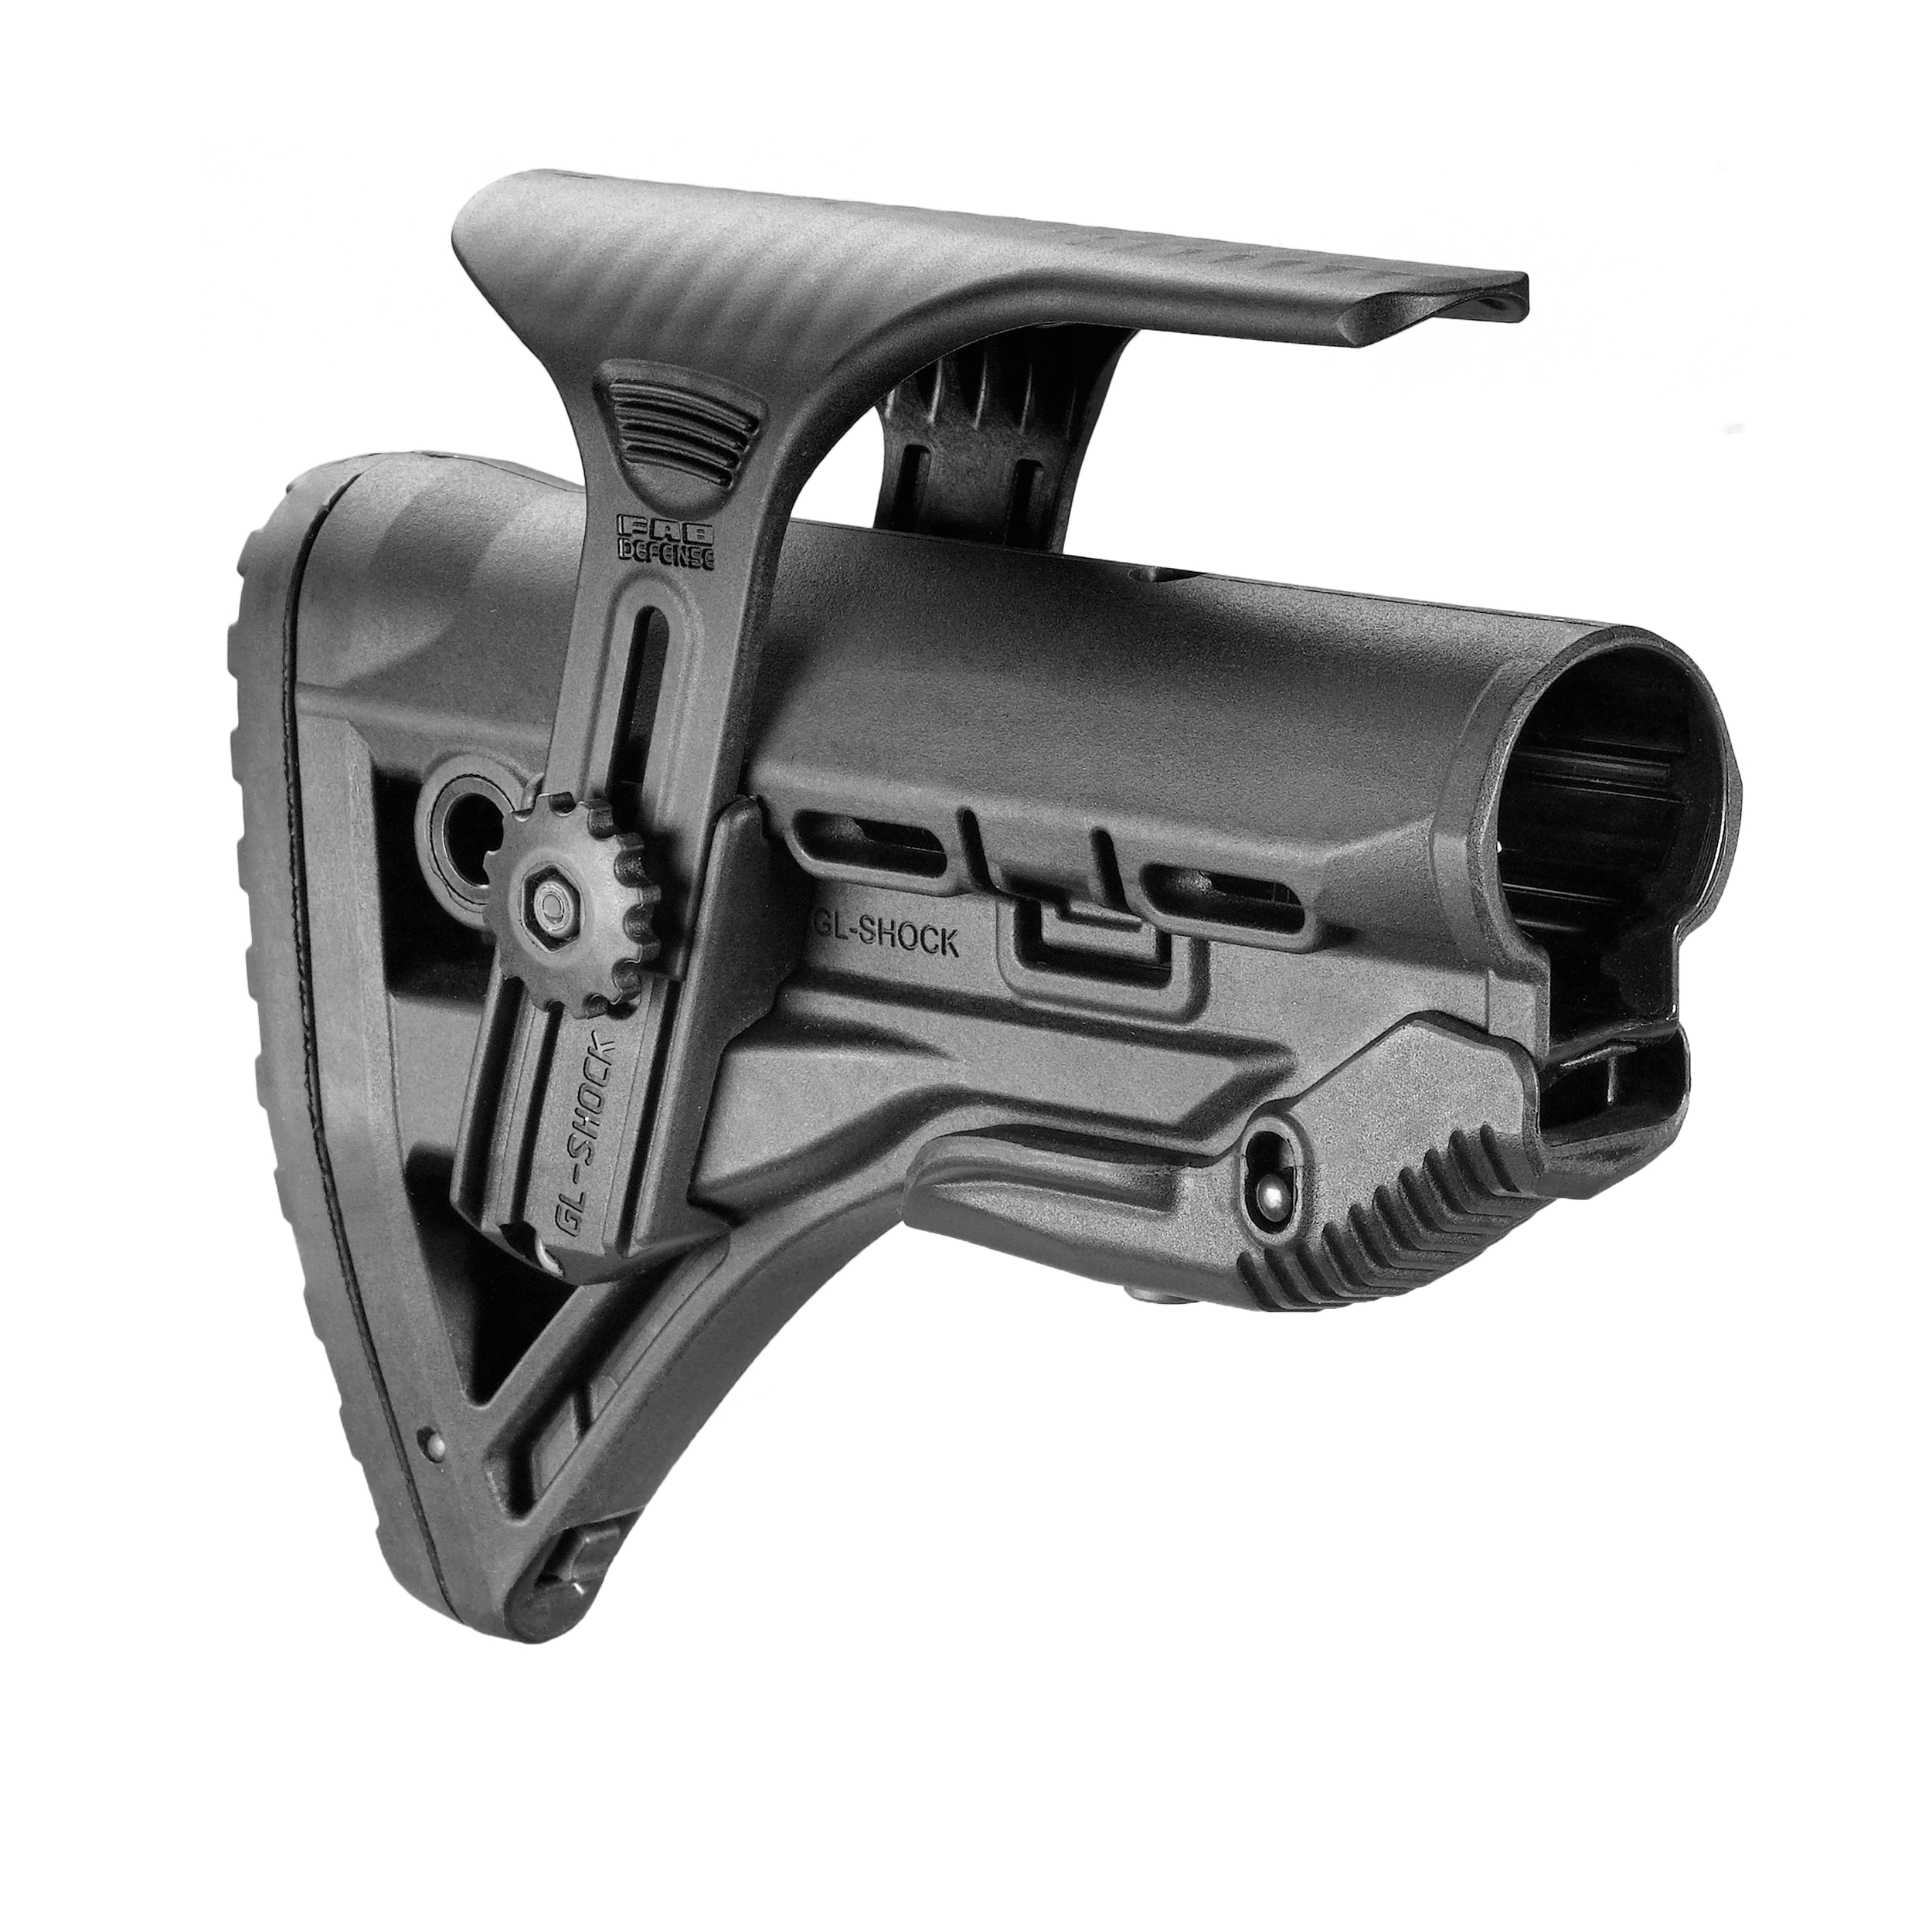 Buttstock AR15 / M16 / M4 Style - Shock Absorbing / Cheek Rest